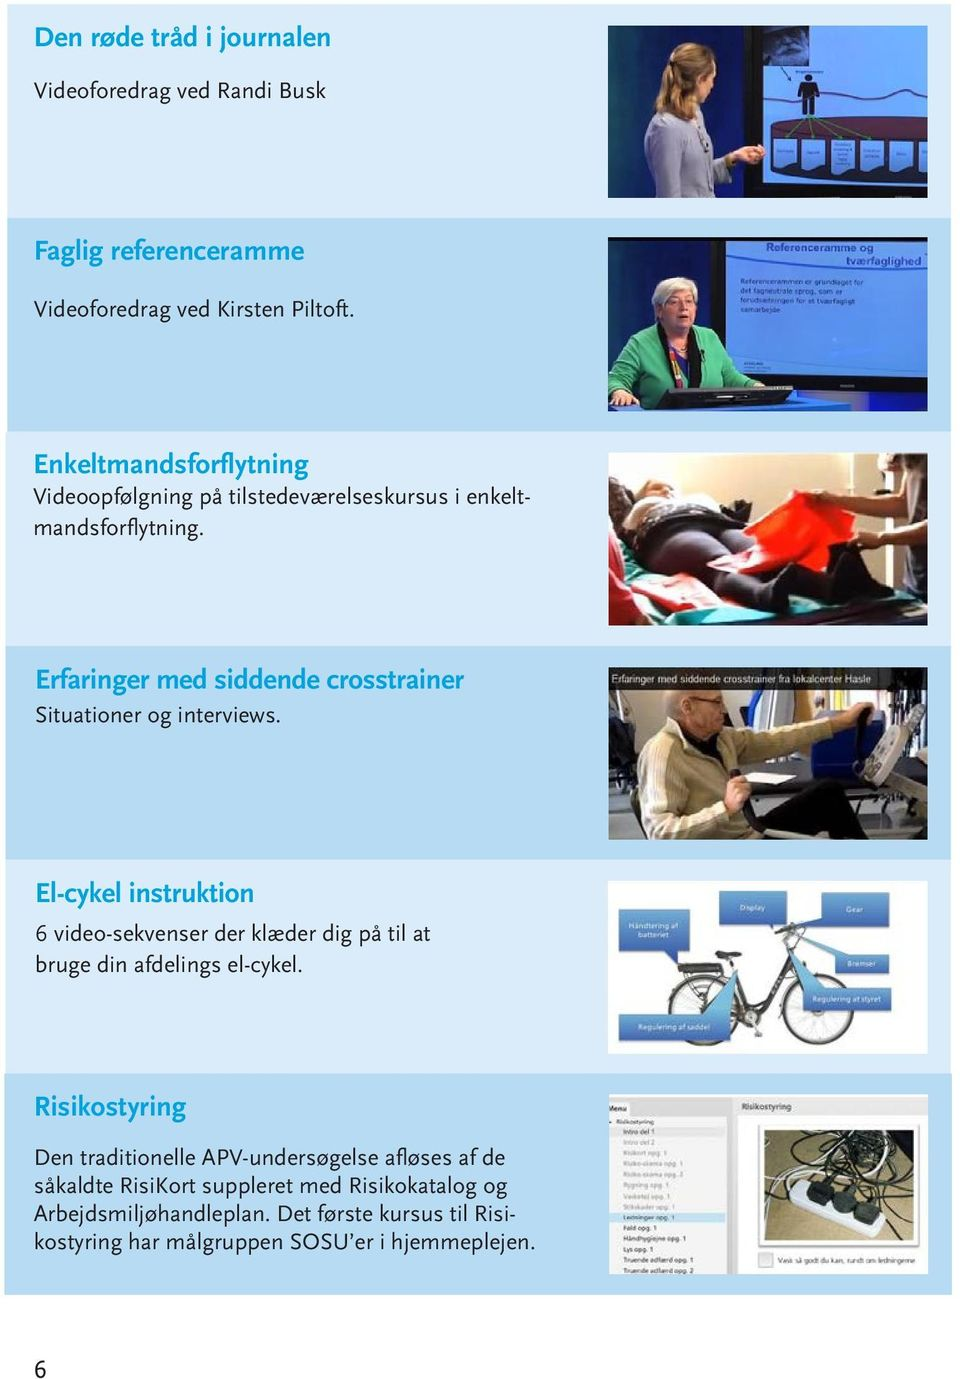 Erfaringer med siddende crosstrainer Situationer og interviews.